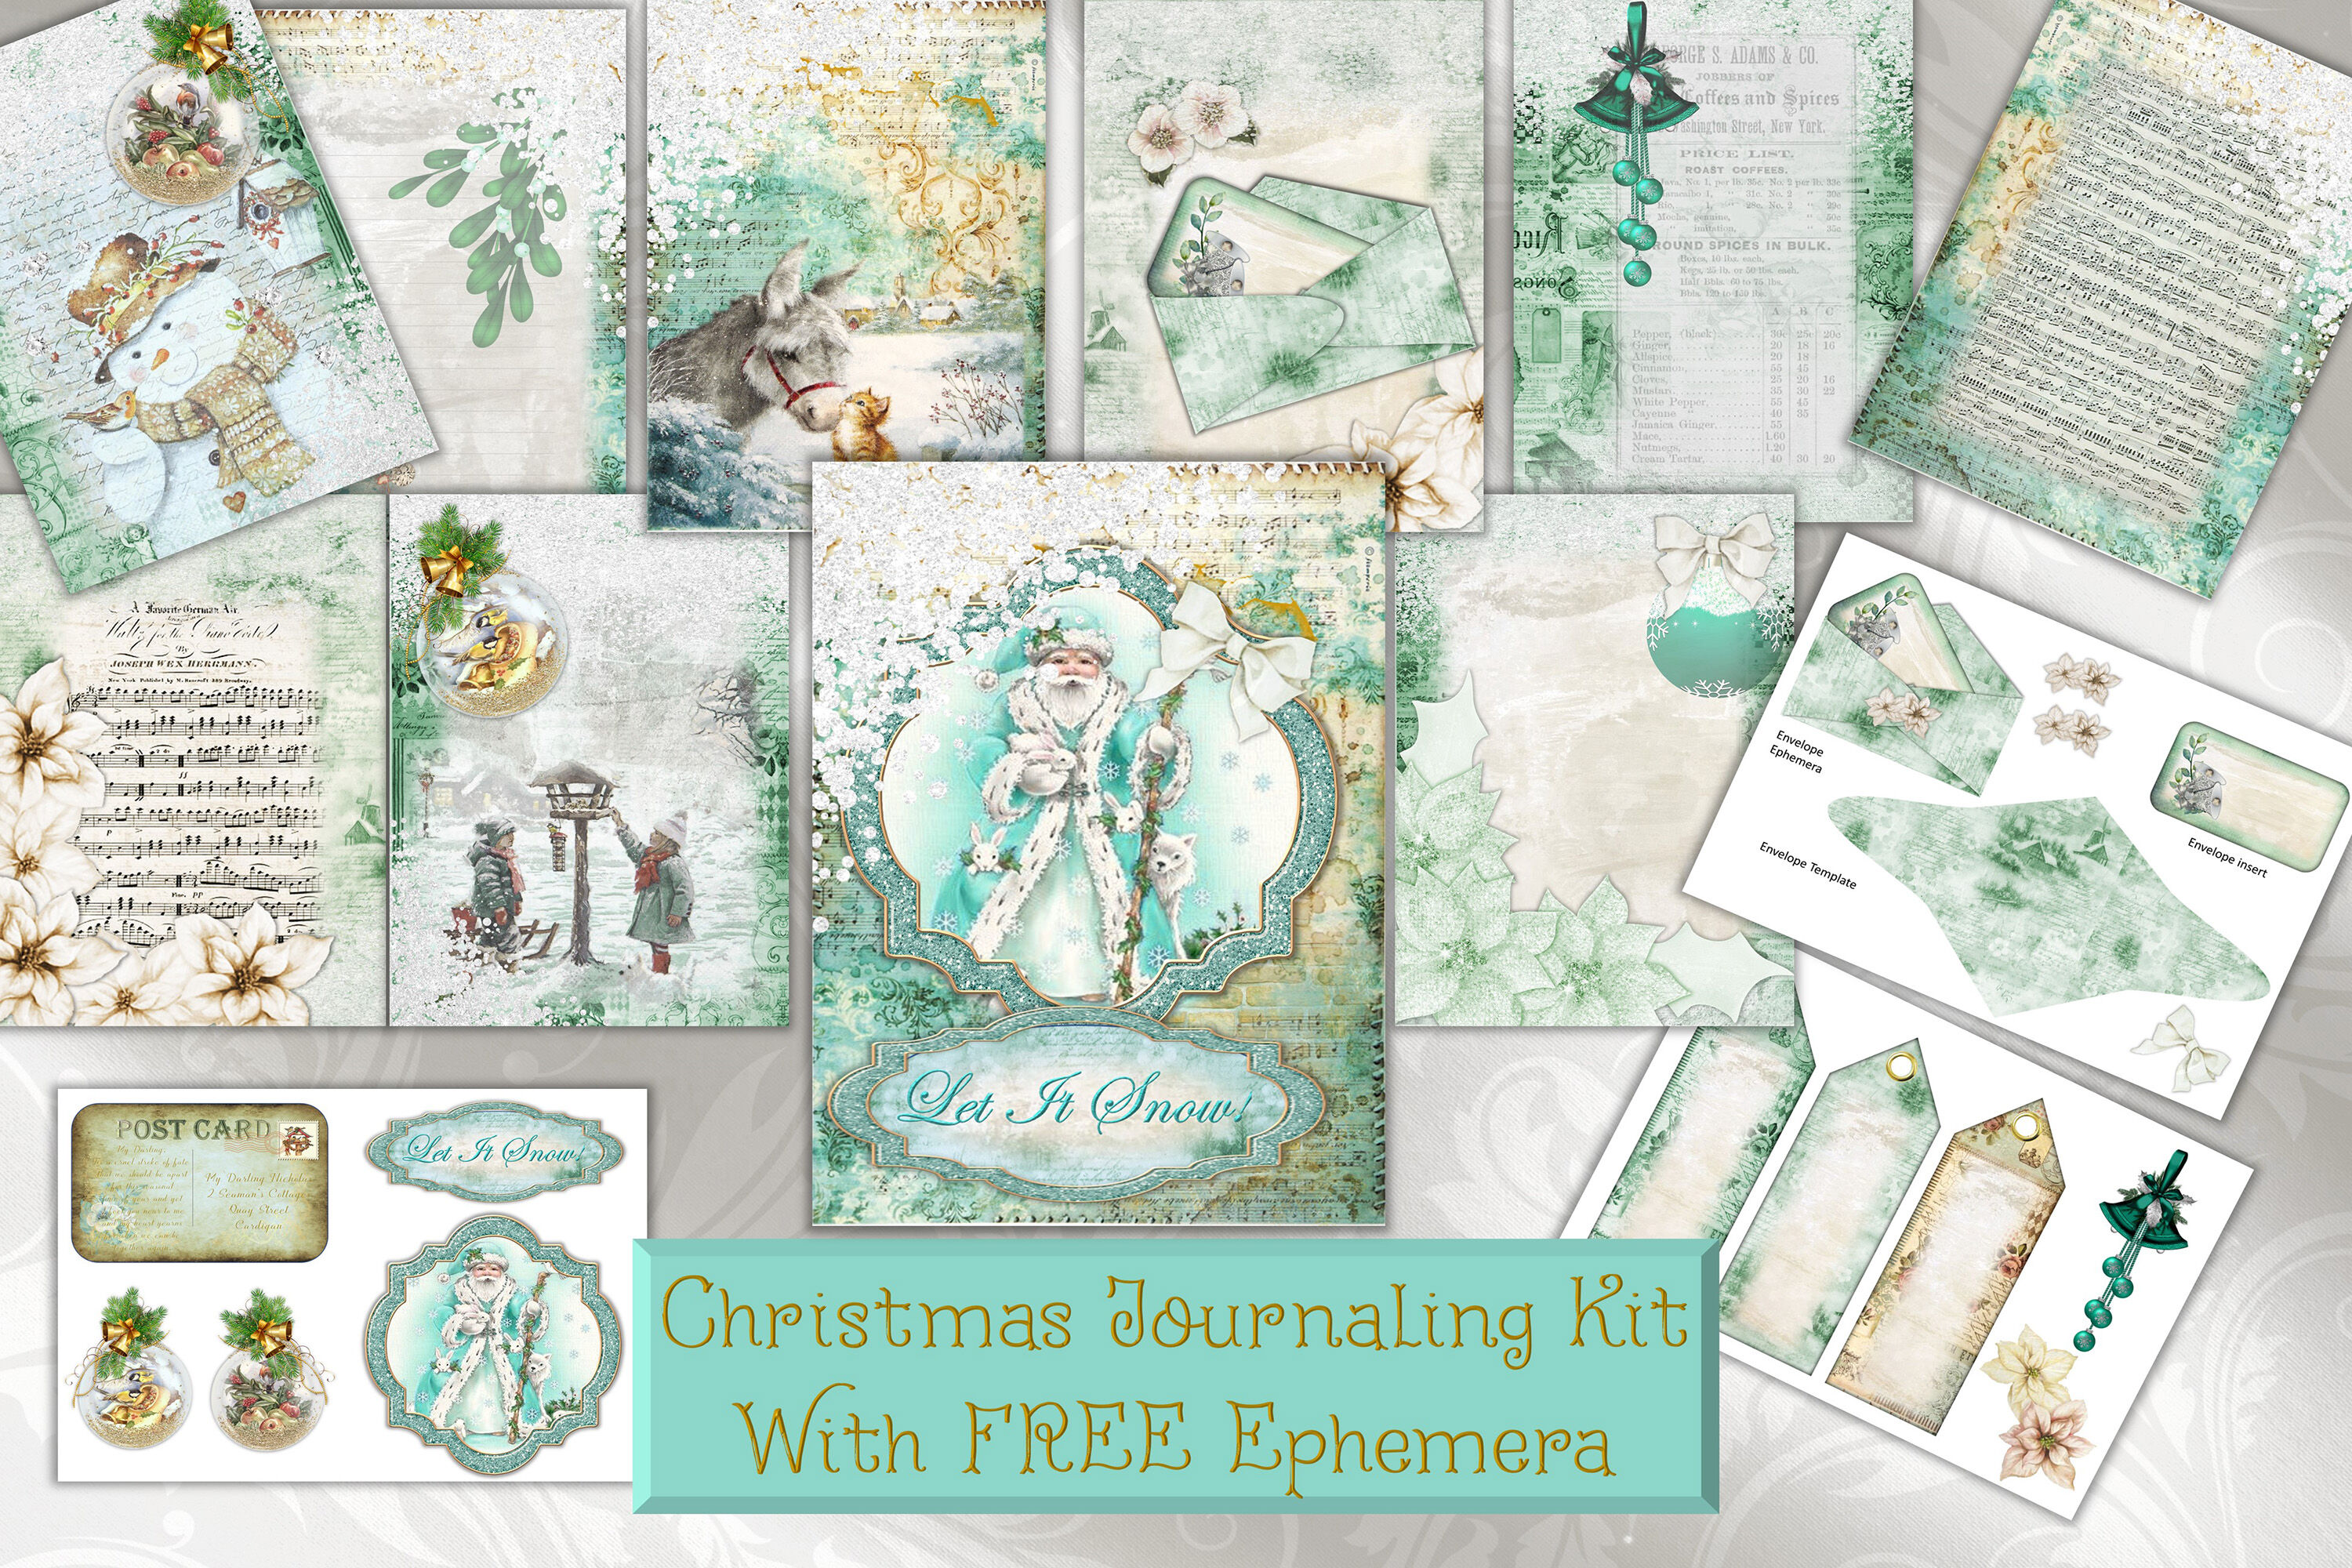 photo regarding Free Printable Ephemera identified as Xmas Printable Journaling webpages with Cost-free Ephemera